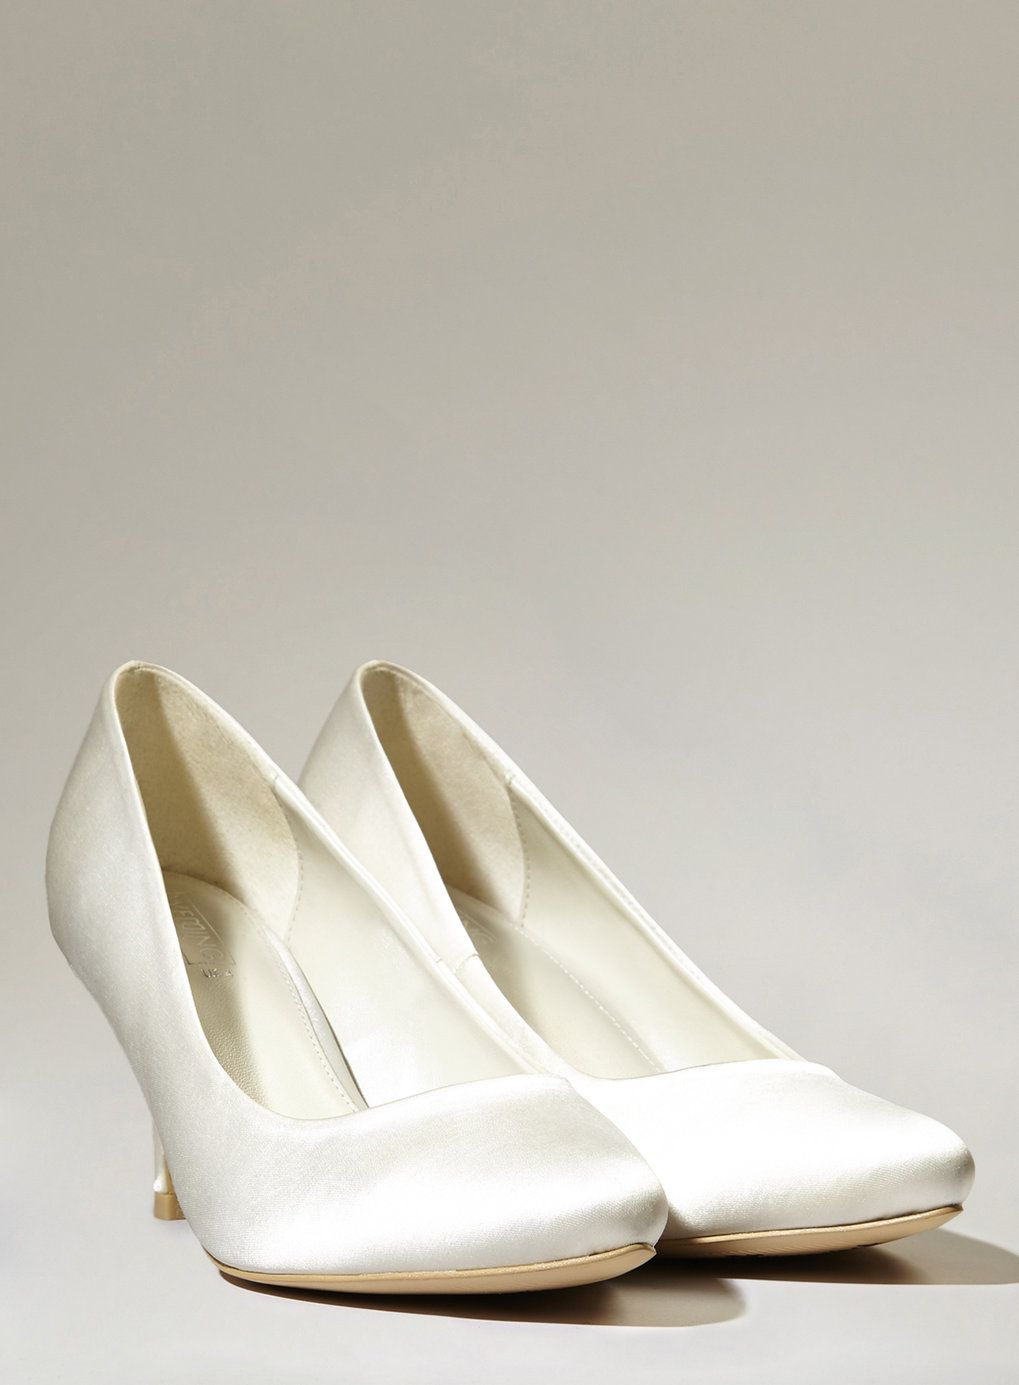 083ea25437a These classic court shoes have memory foam padded insoles to ensure you re  comfortable on your feet all-day long. £30.  BHSBride  Wedding  Bridal   Bride ...